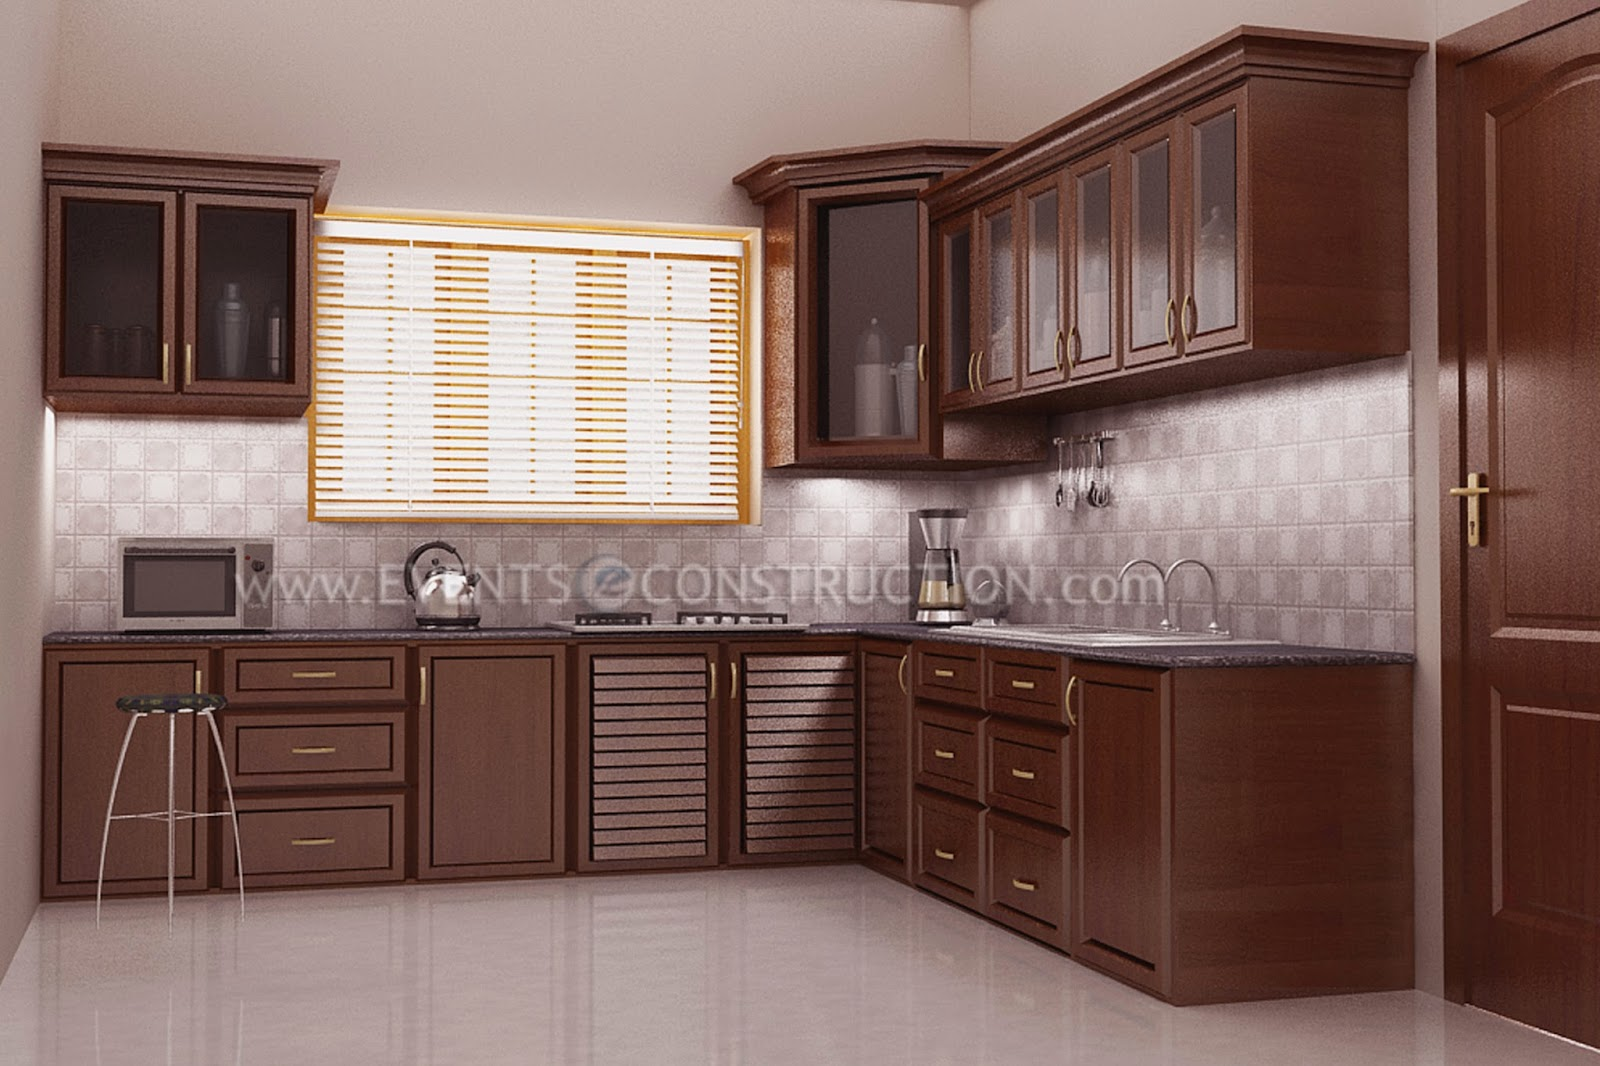 evens construction pvt ltd kitchen design with wooden